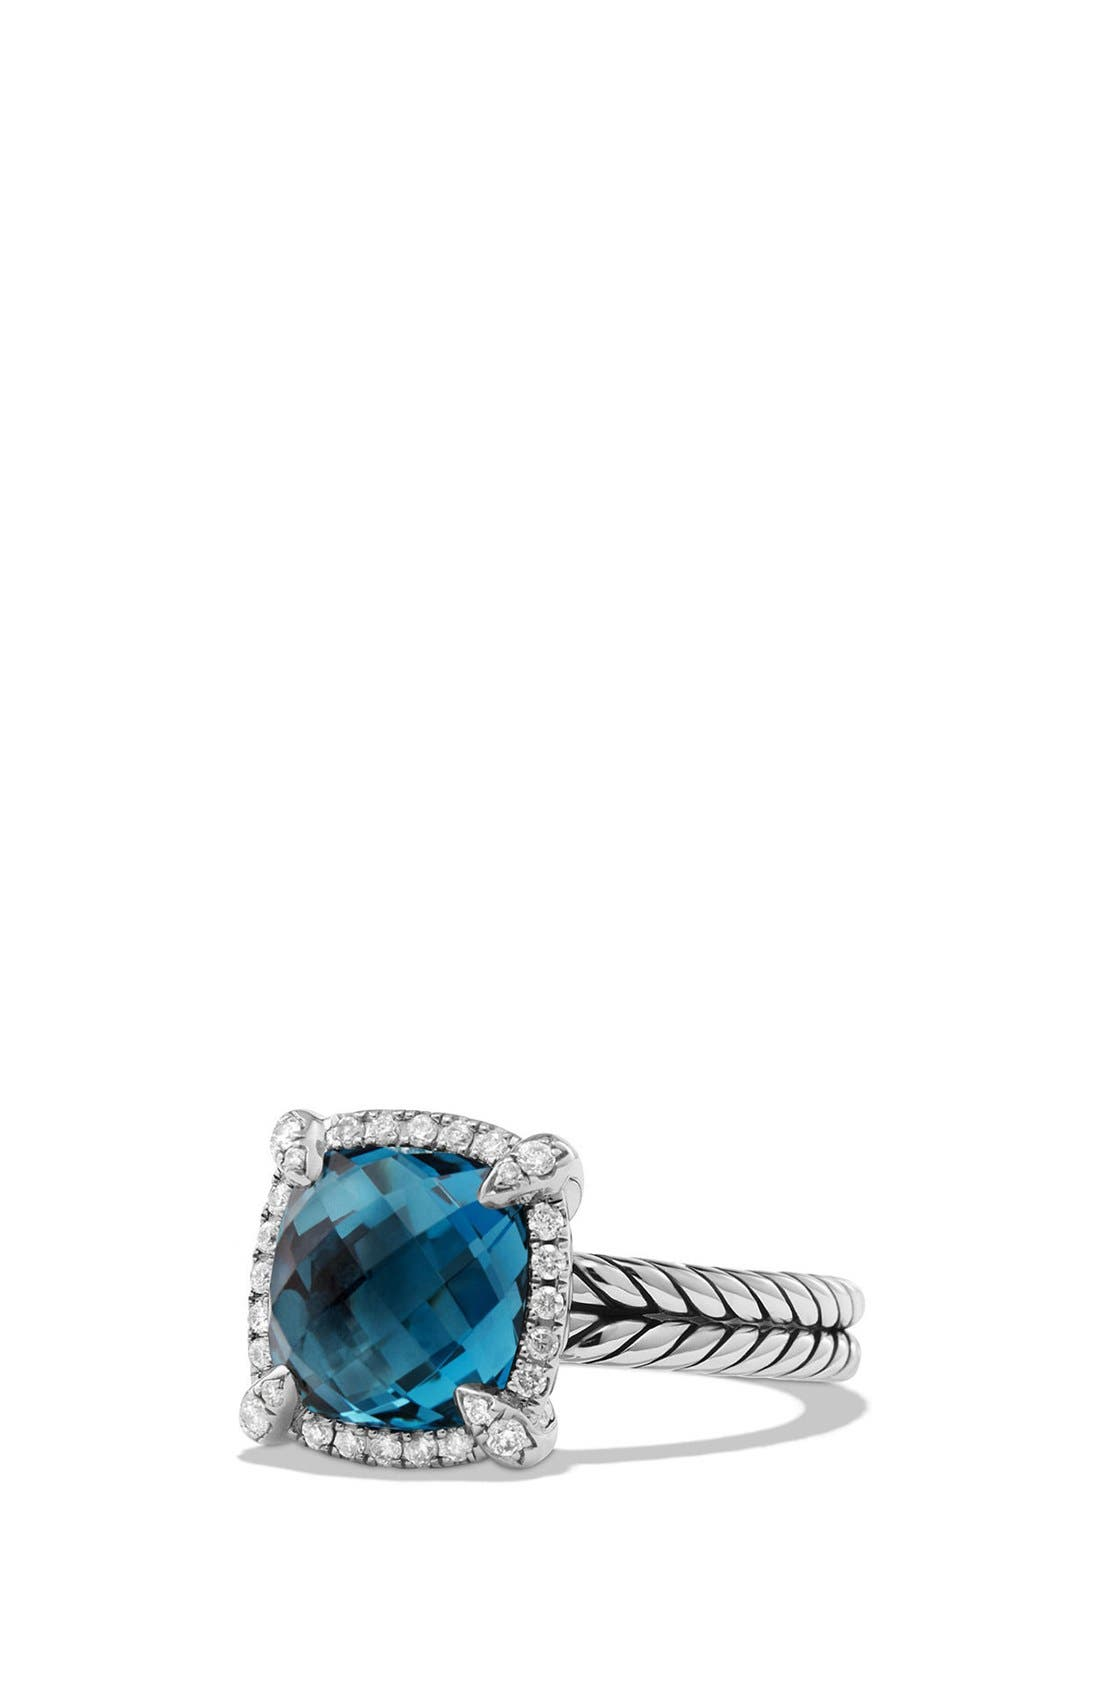 'Châtelaine' Small Pavé Bezel Ring with Diamonds,                         Main,                         color, Blue Topaz